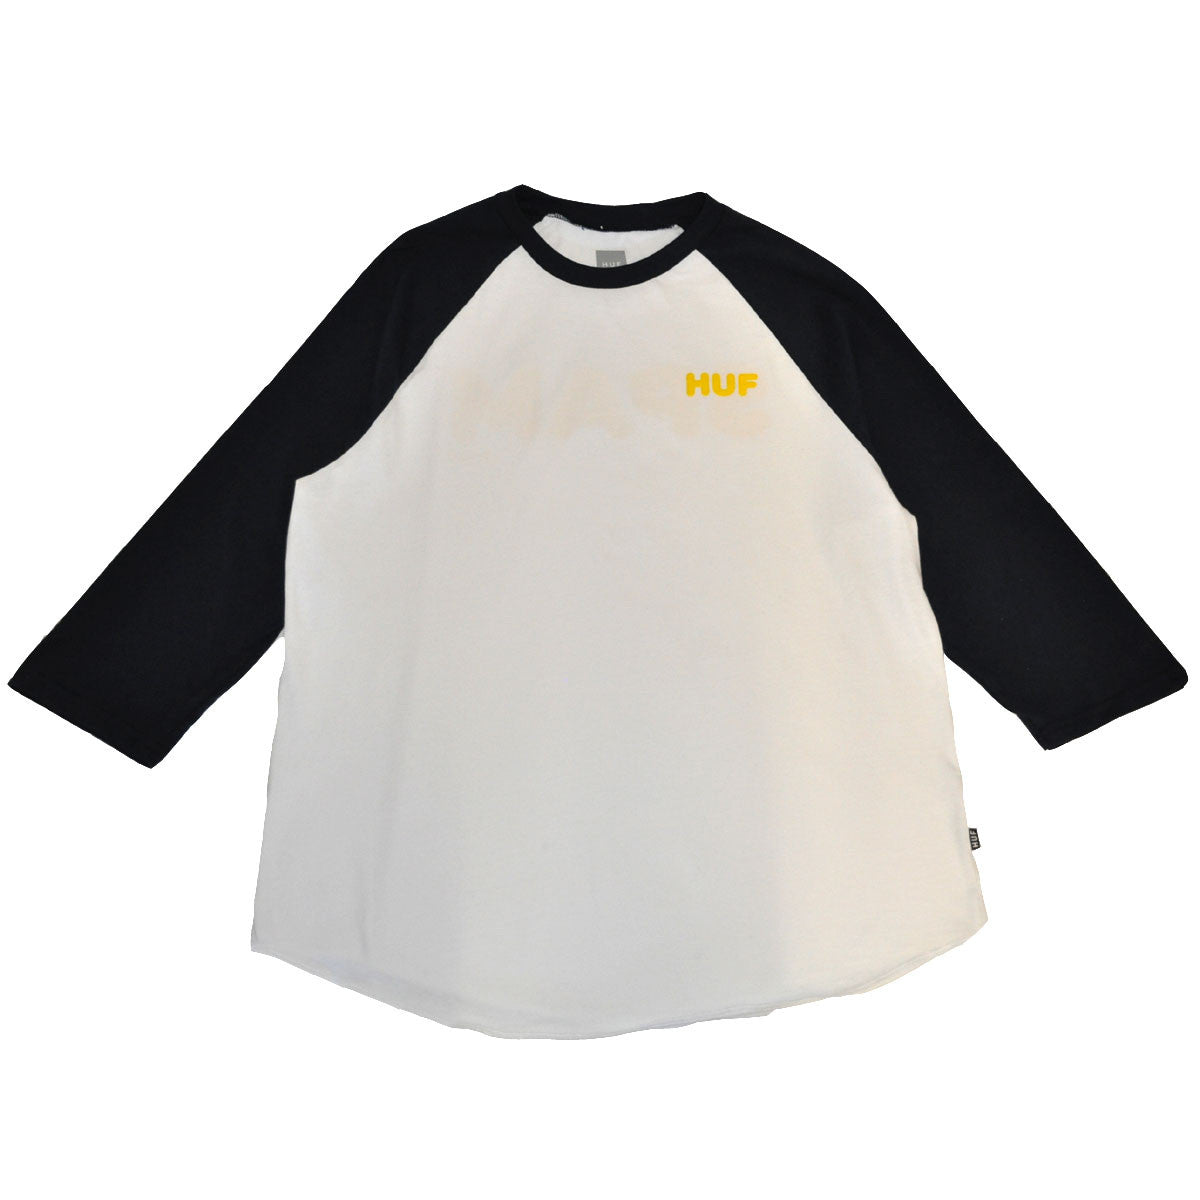 HUF - Spam Men's Raglan Tee, White - The Giant Peach